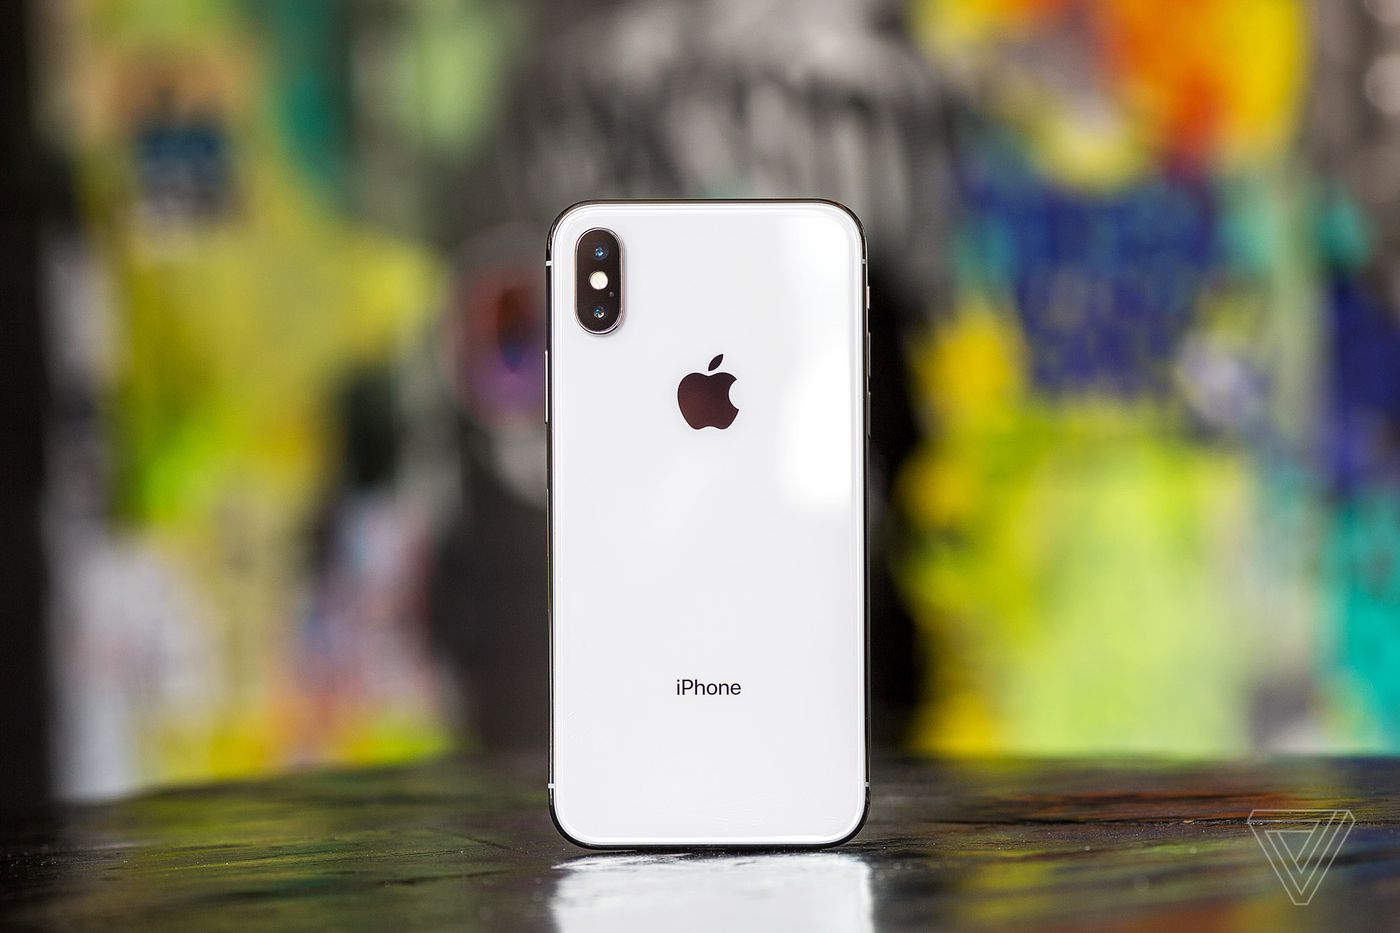 How to trade in your used iPhone at Verizon, AT&T, T-Mobile, and